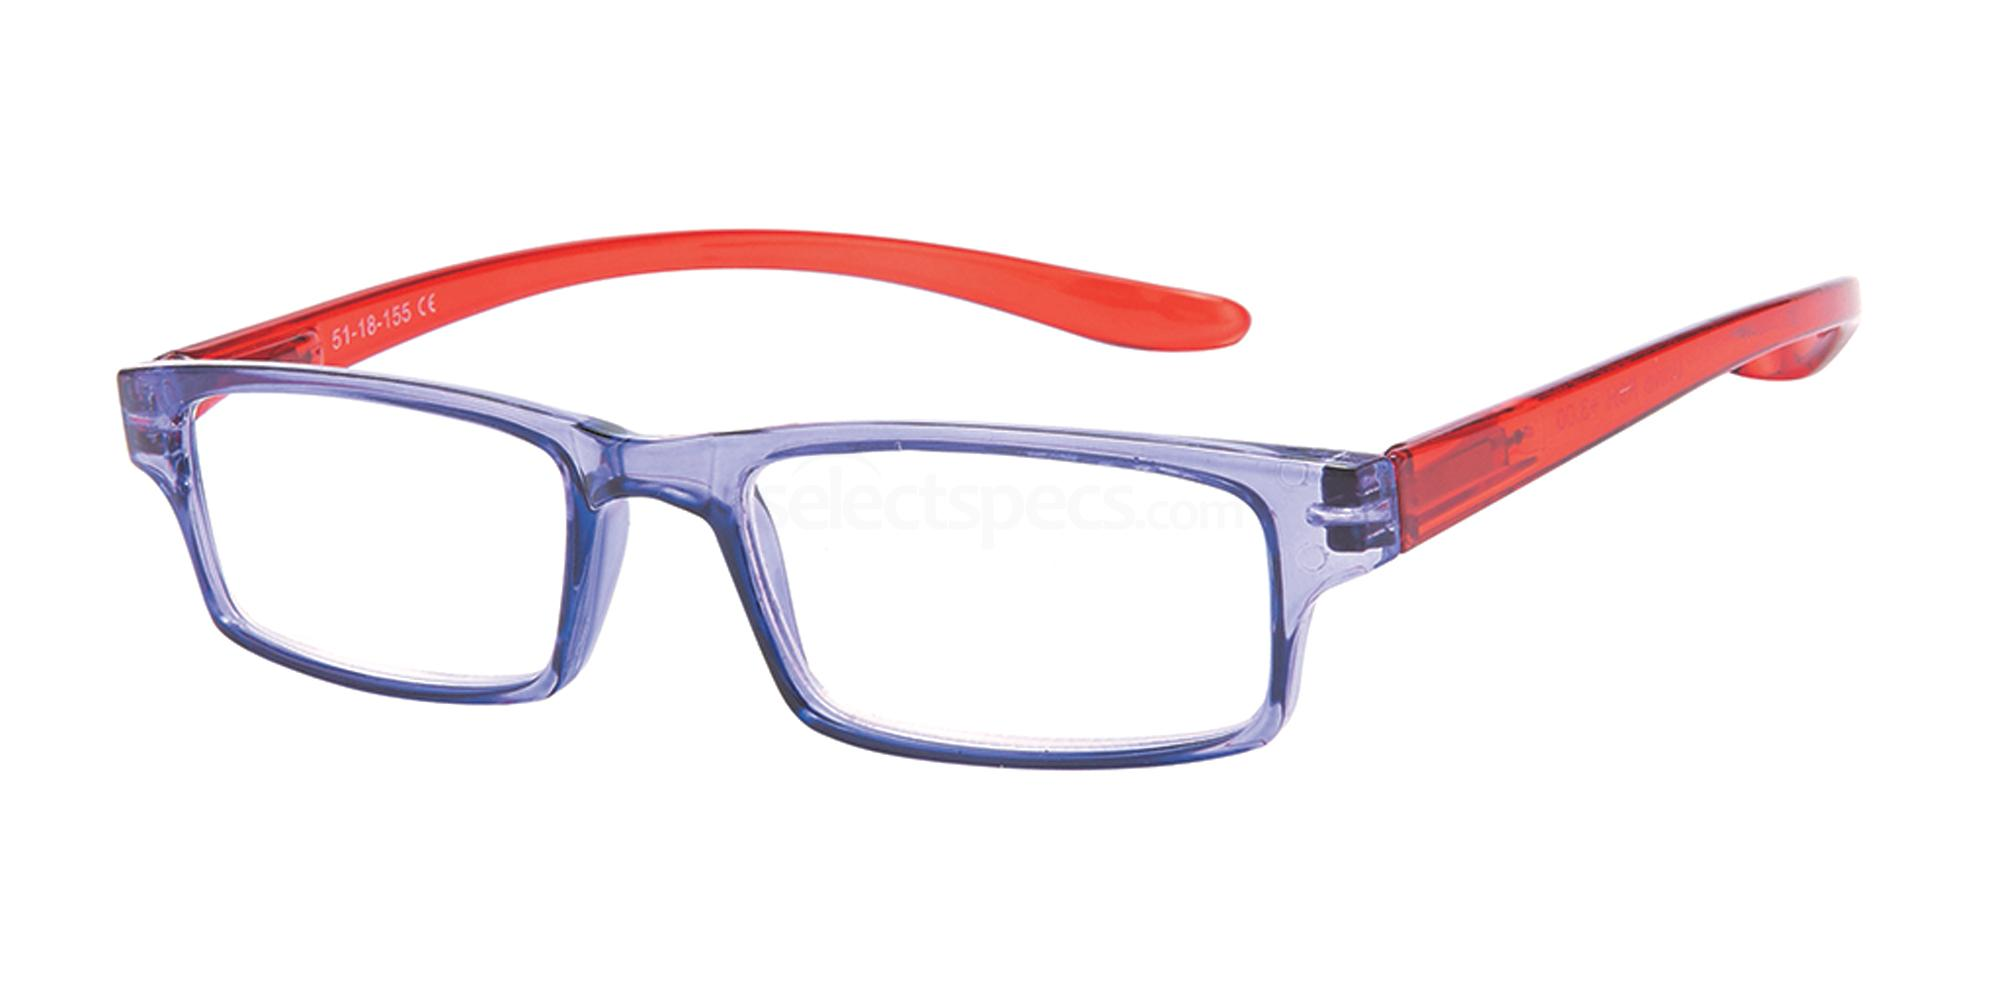 +1.00 Power Reading R9 - H: Lilac / Red Accessories, Univo Readers